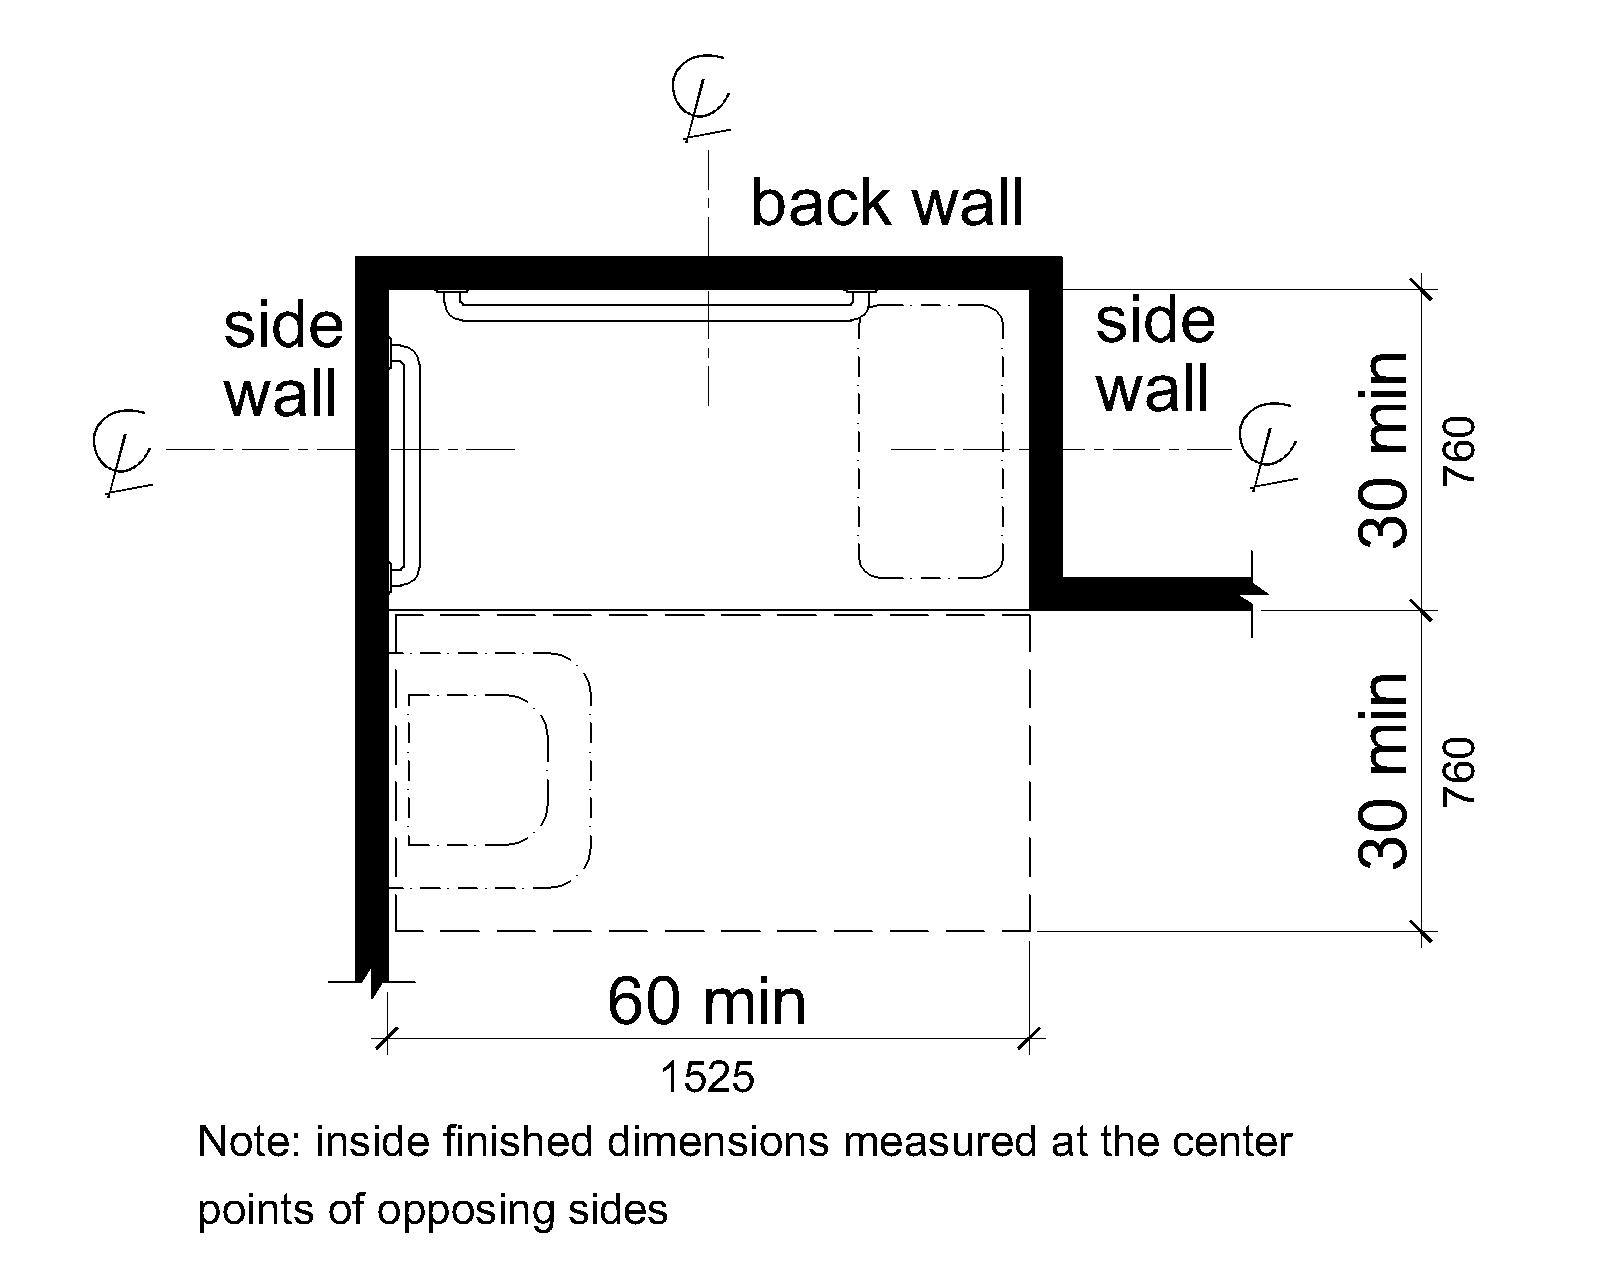 A plan view shows the shower compartment is 30 inches (760 mm) minimum by 60 inches (1525 mm) minimum with a 60 inch (1525 mm) wide entry on the face of the compartment. A clear deck space 30 inches (760 mm) side is provided adjacent to the open face of the compartment. A seat is shown on one end.  A lavatory is permitted within the clear deck space on the end opposite the seat.